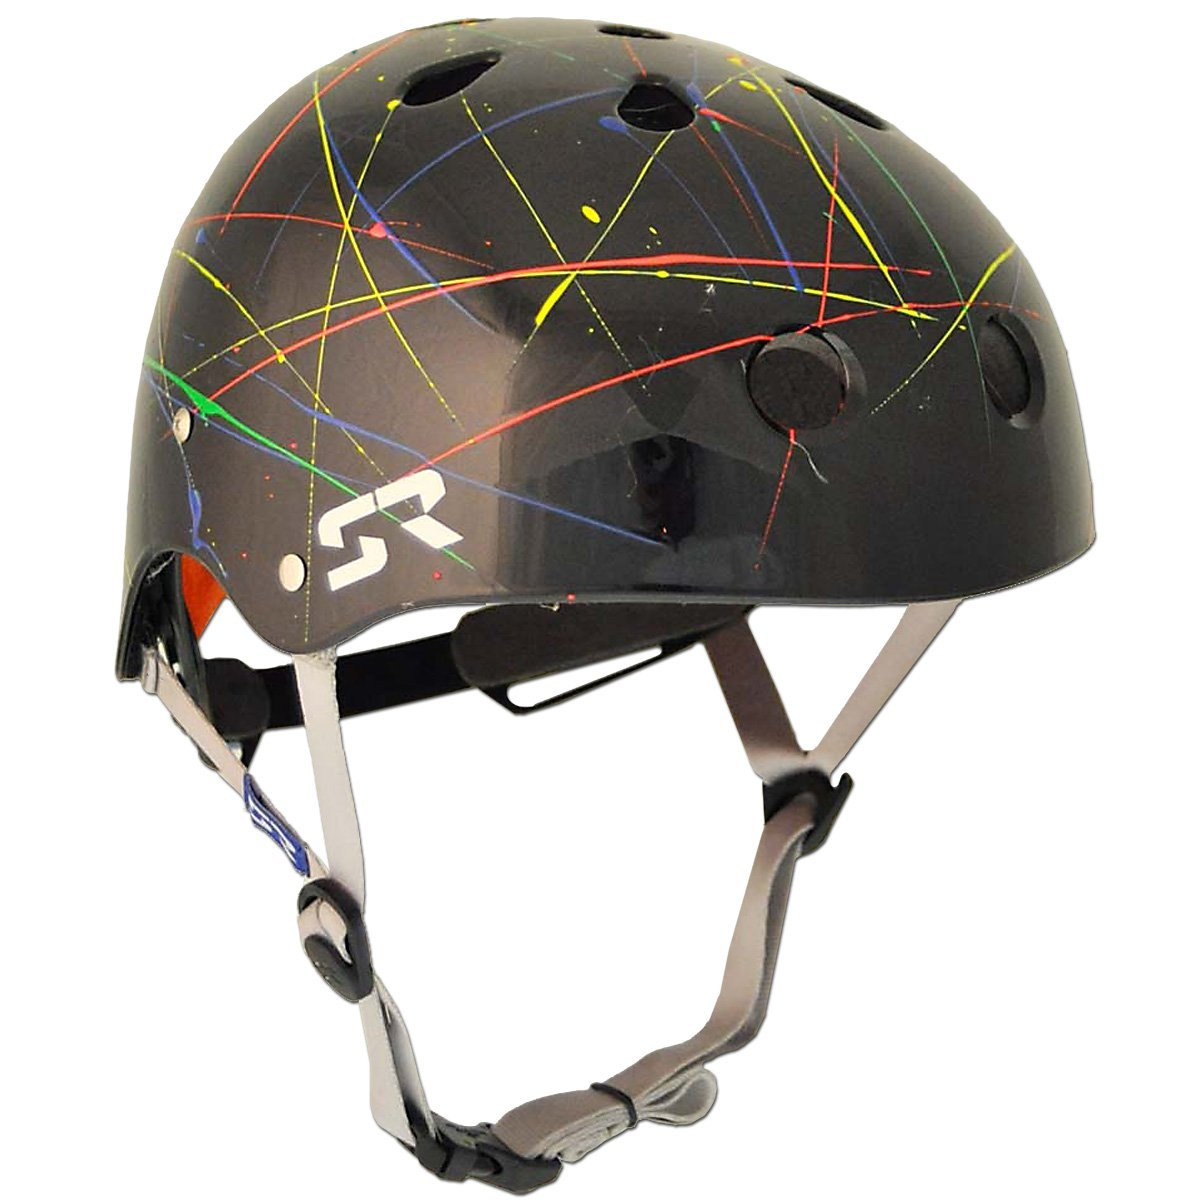 Shred Ready Bicycle Helmets